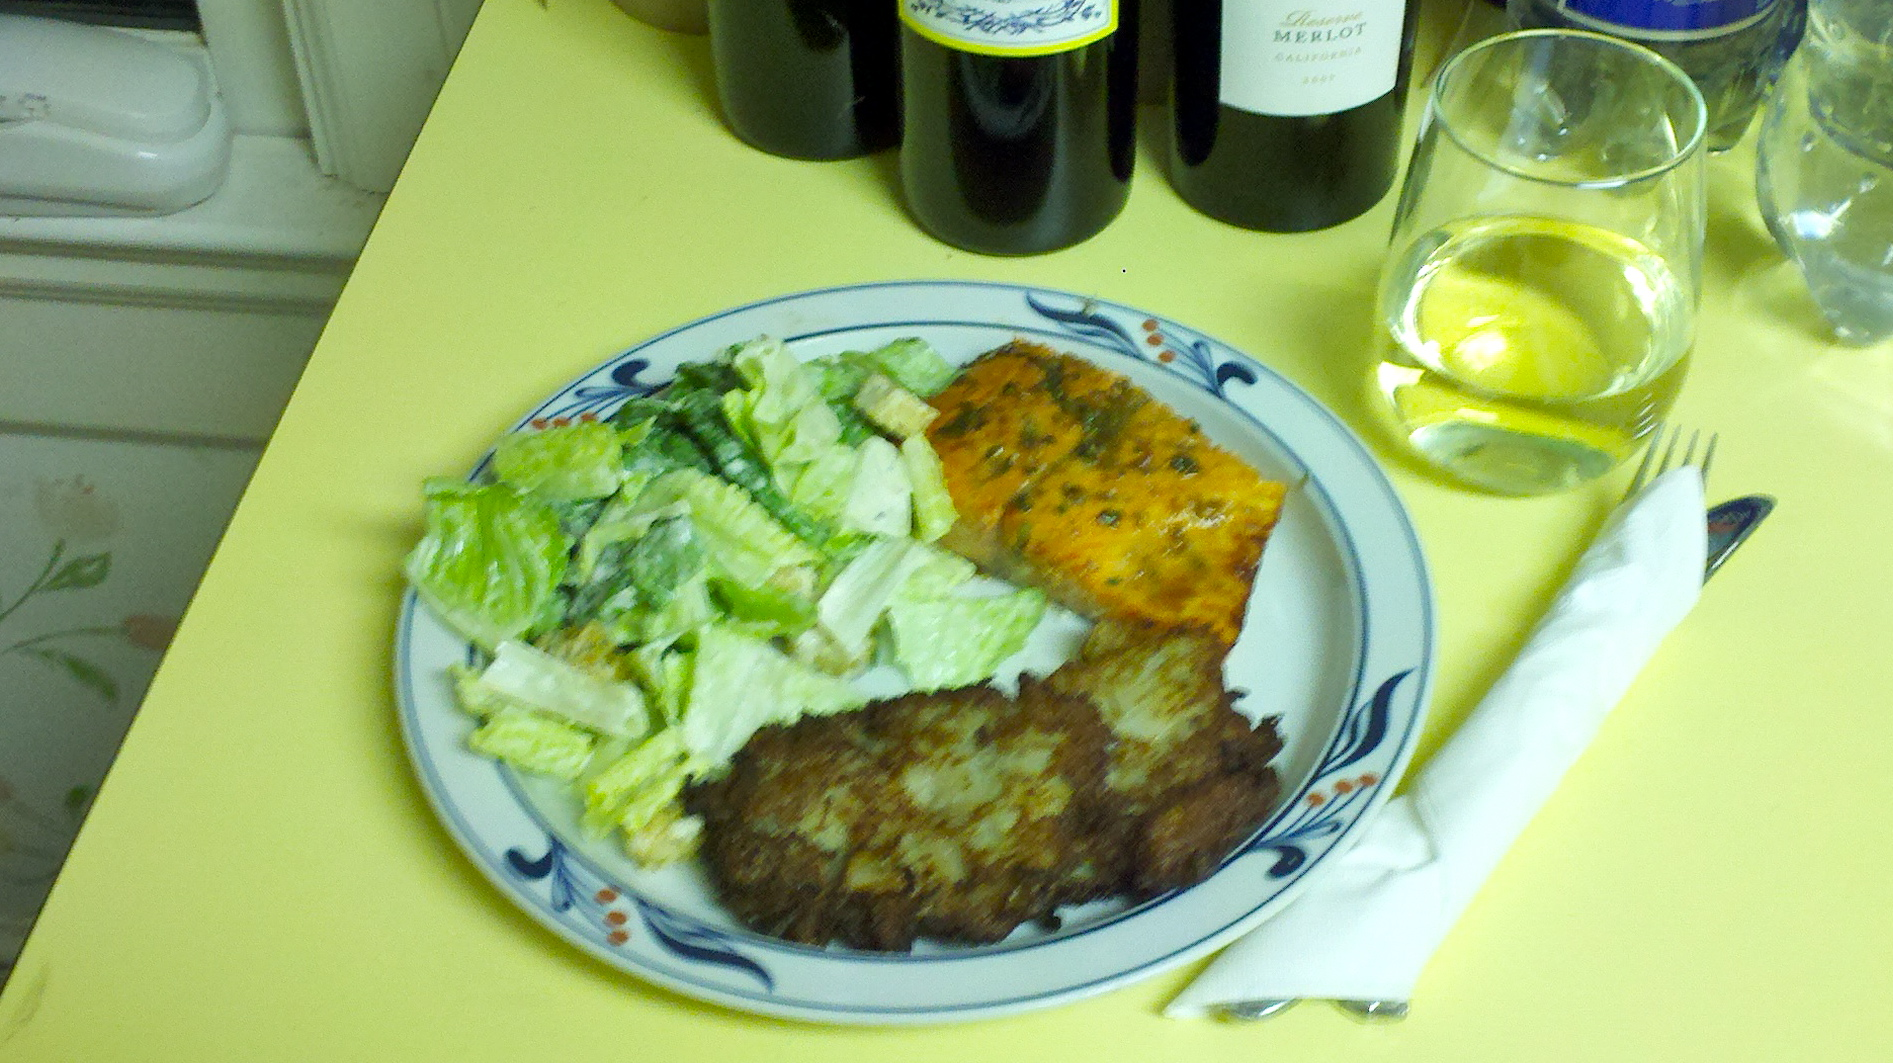 Home Cooked Meals at School - The William & Mary Blogs